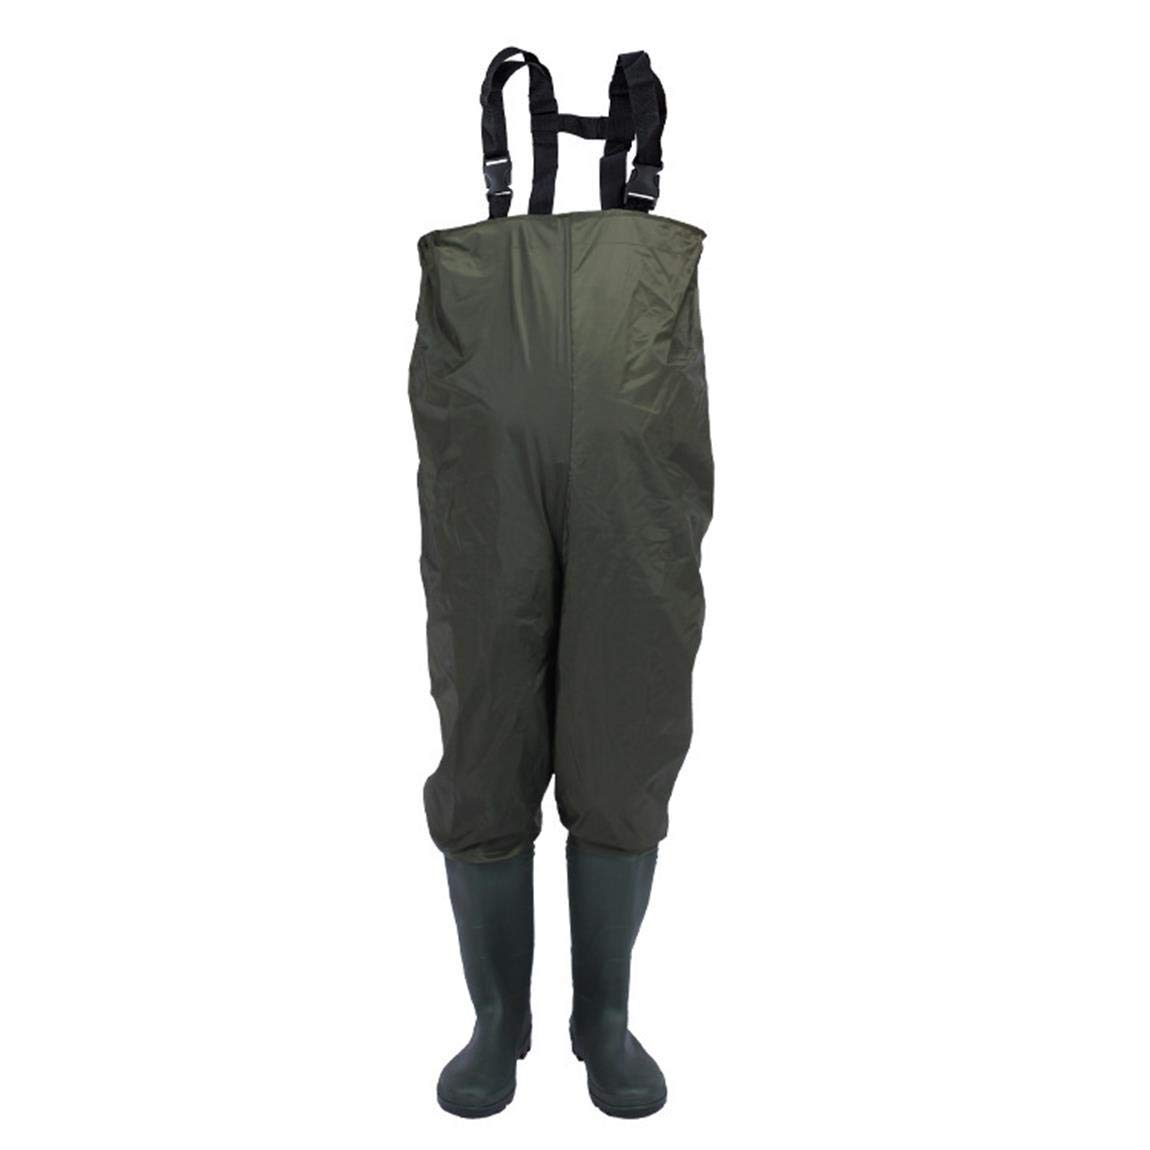 53cedeb9c63 Get Quotations · Autek Chest Wader Fishing Pants with Boots Waterproof  Breathable Army Green Loose Waders